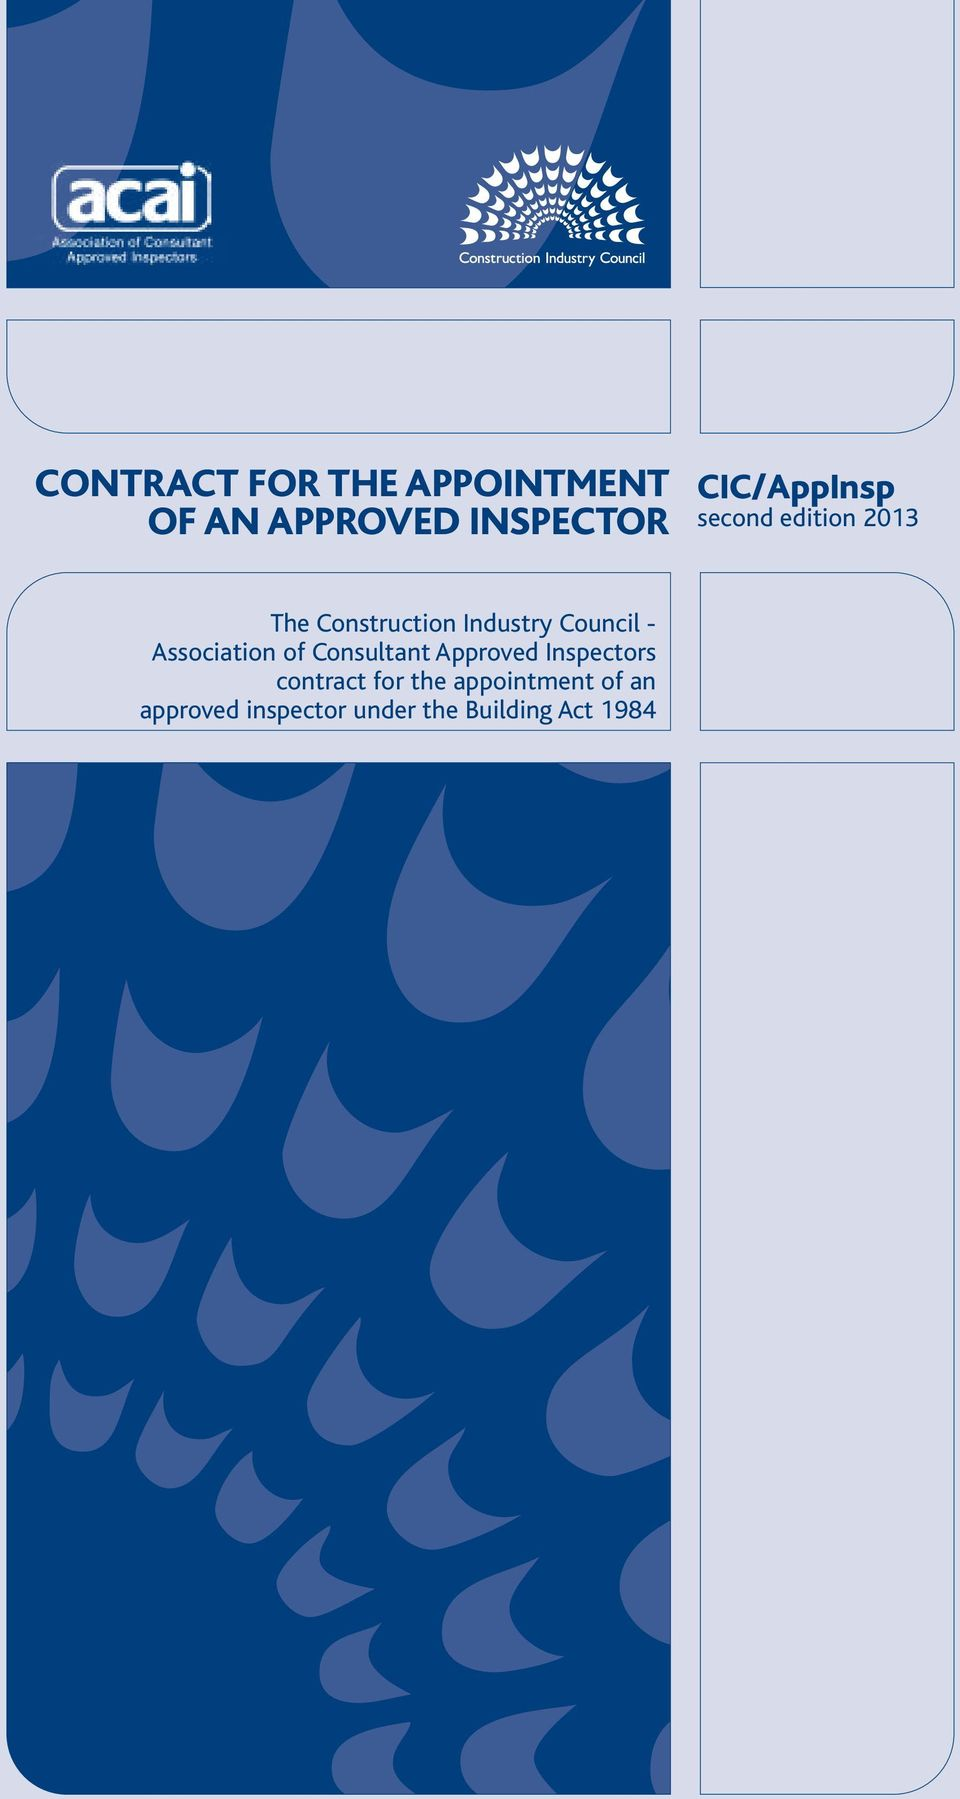 Association of Consultant Approved Inspectors contract